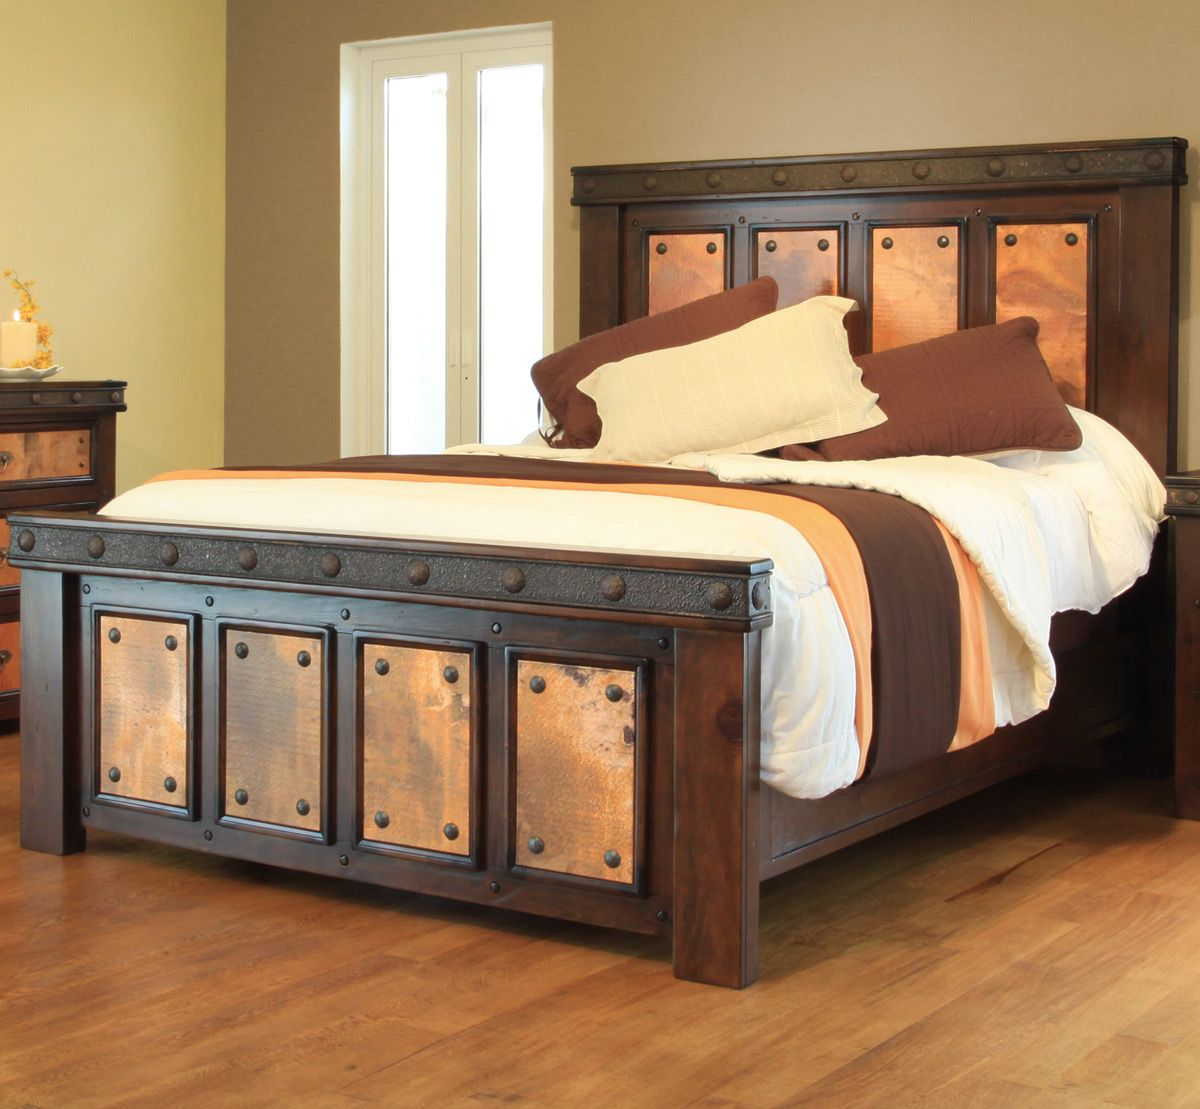 Copper Canyon Complete Bed - King Unique rustic style with copper ...